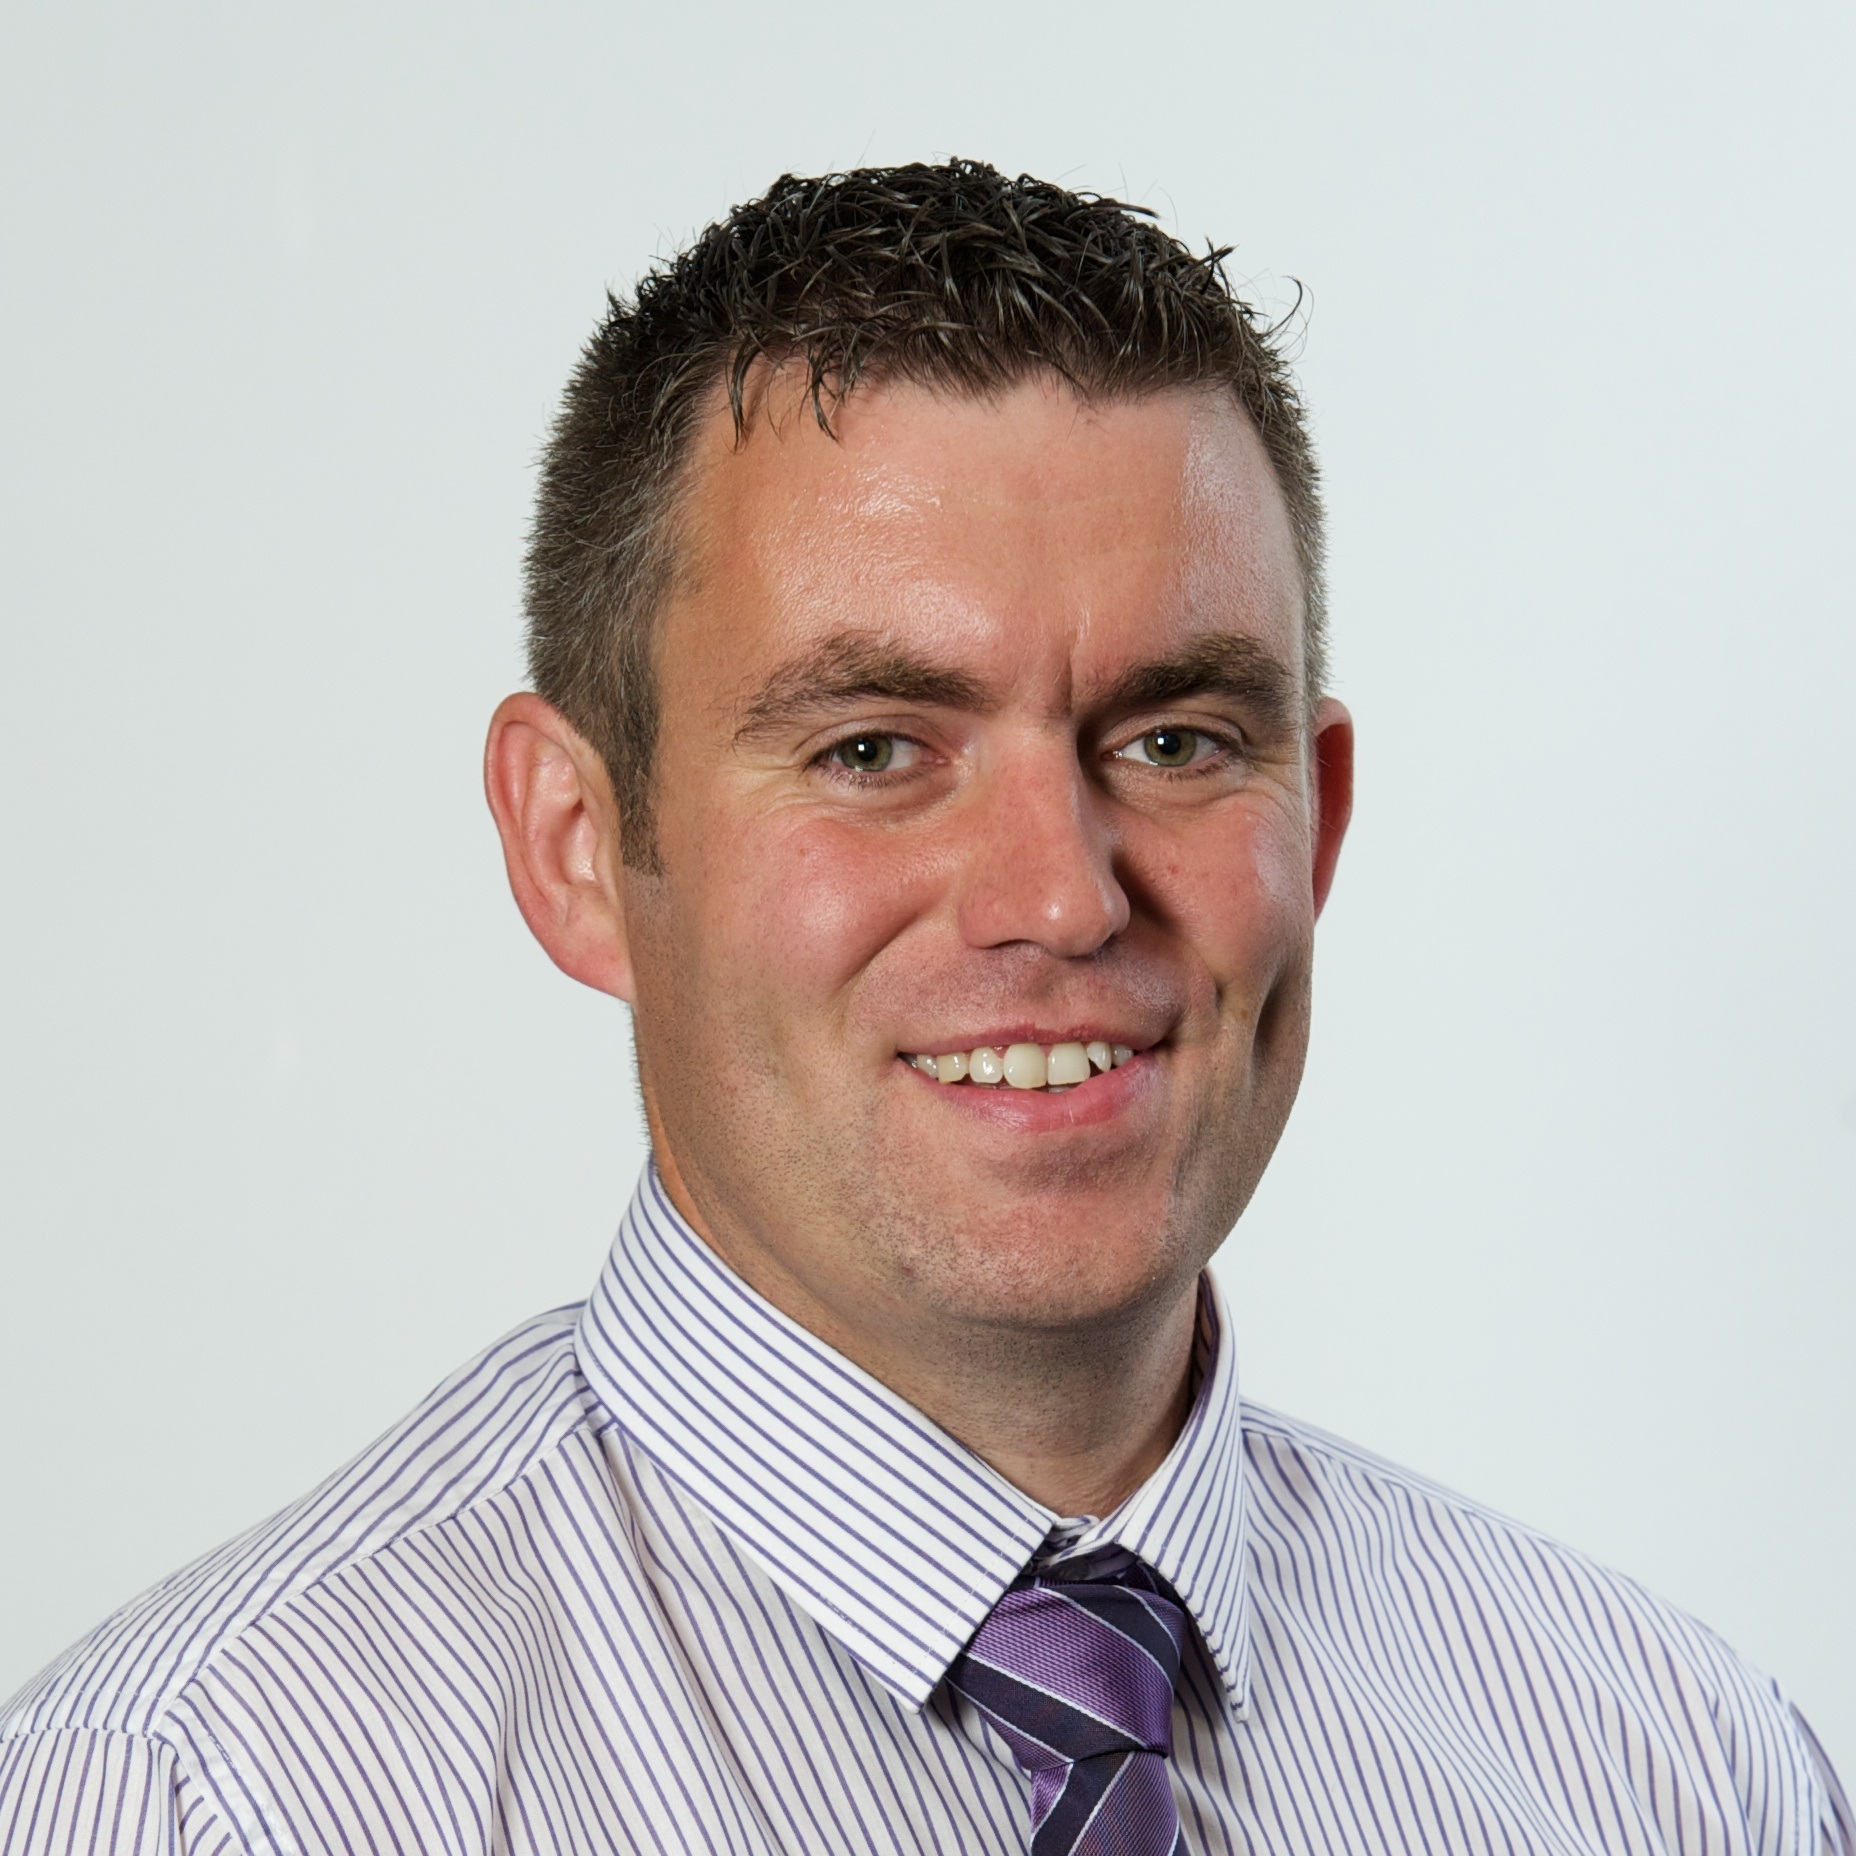 Gerard Duff, Access Officer